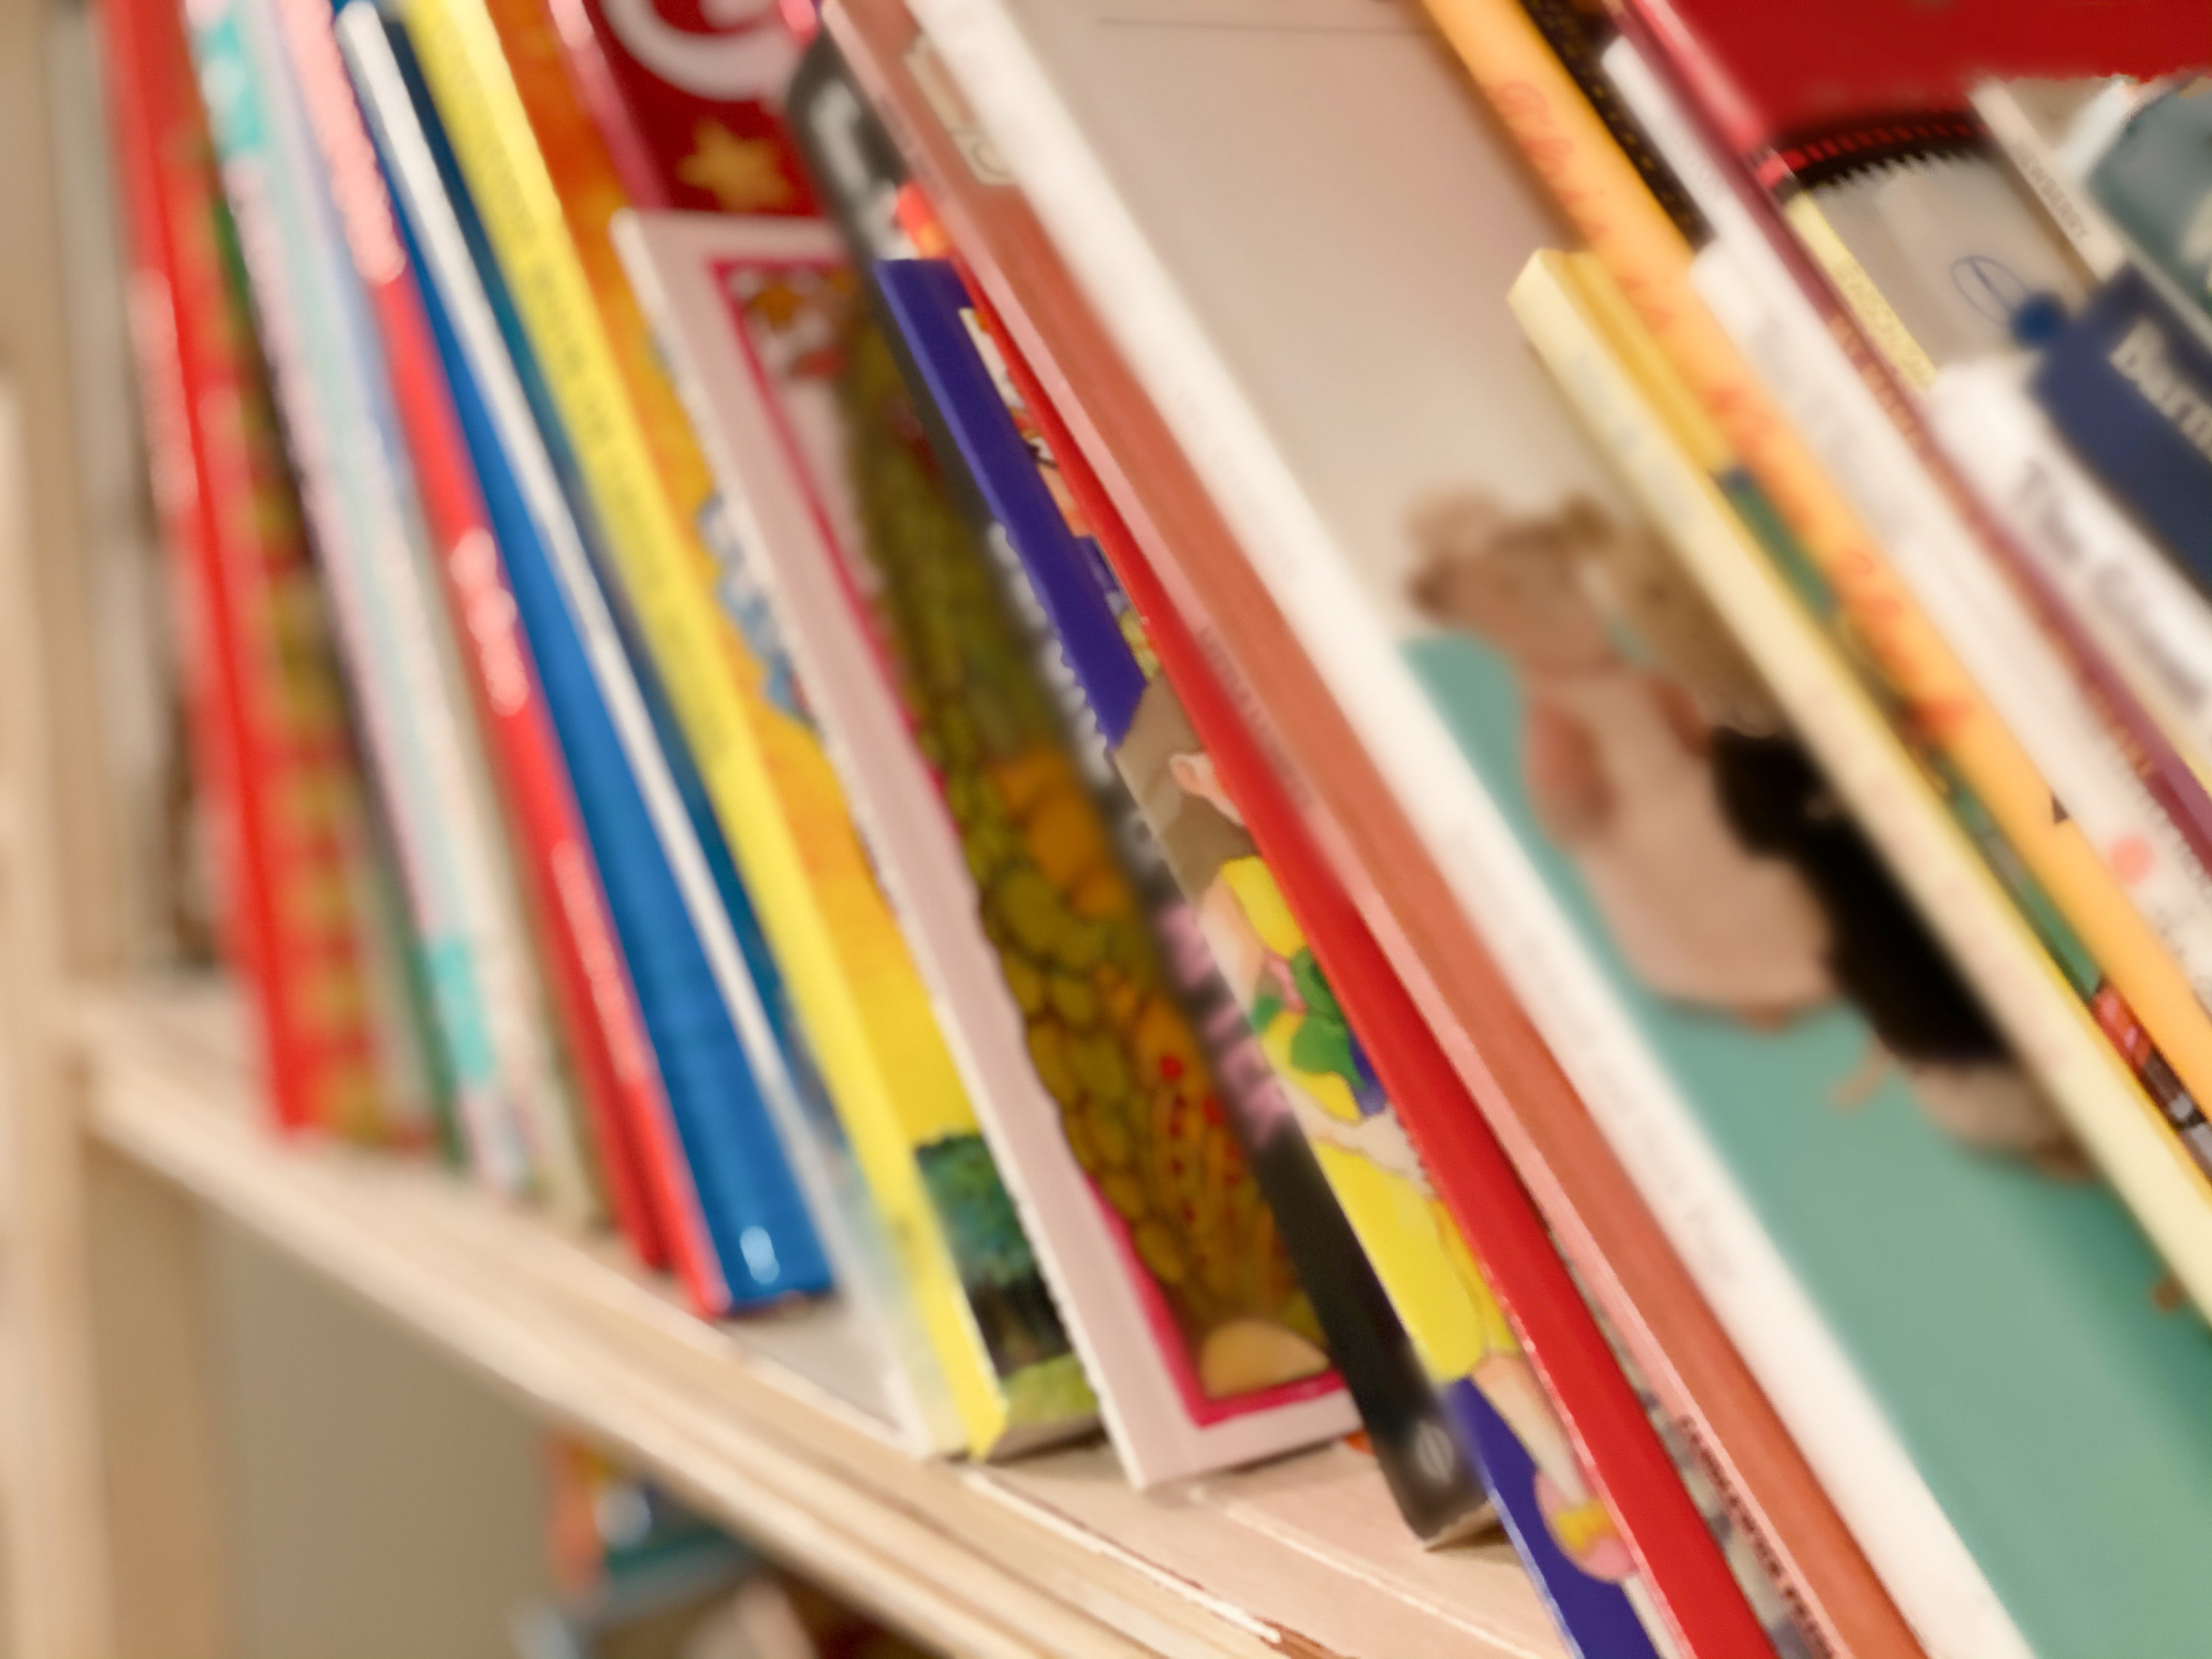 A bookshelf packed with children's books. (Catherine McQueen/Getty Images)